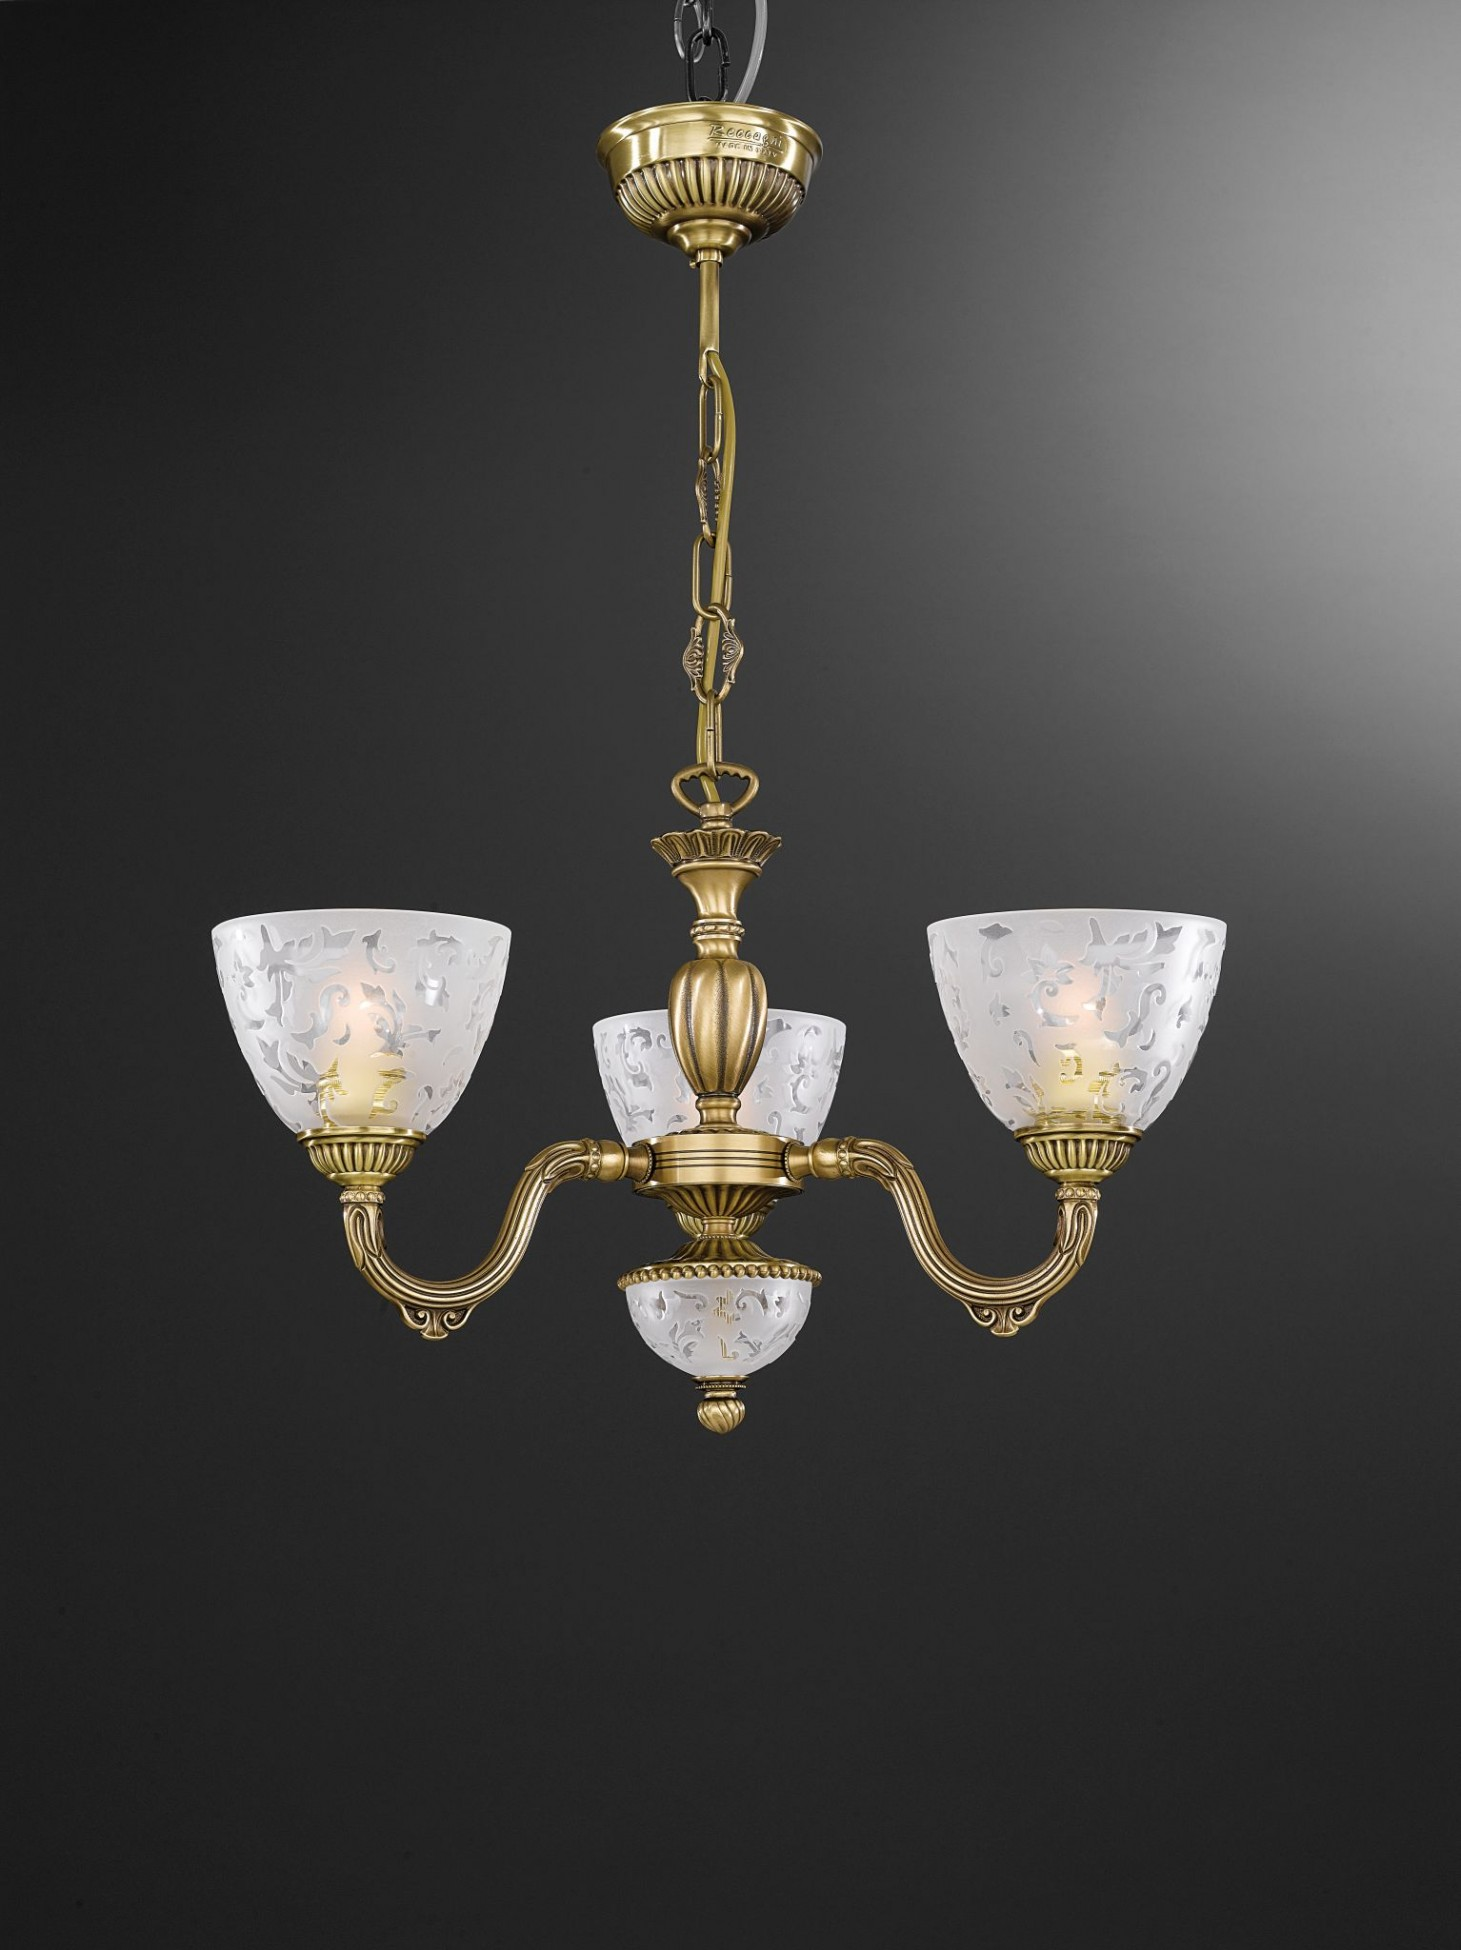 3 light brass chandelier with frosted glasses facing upward reccagni store - Lights and chandeliers ...